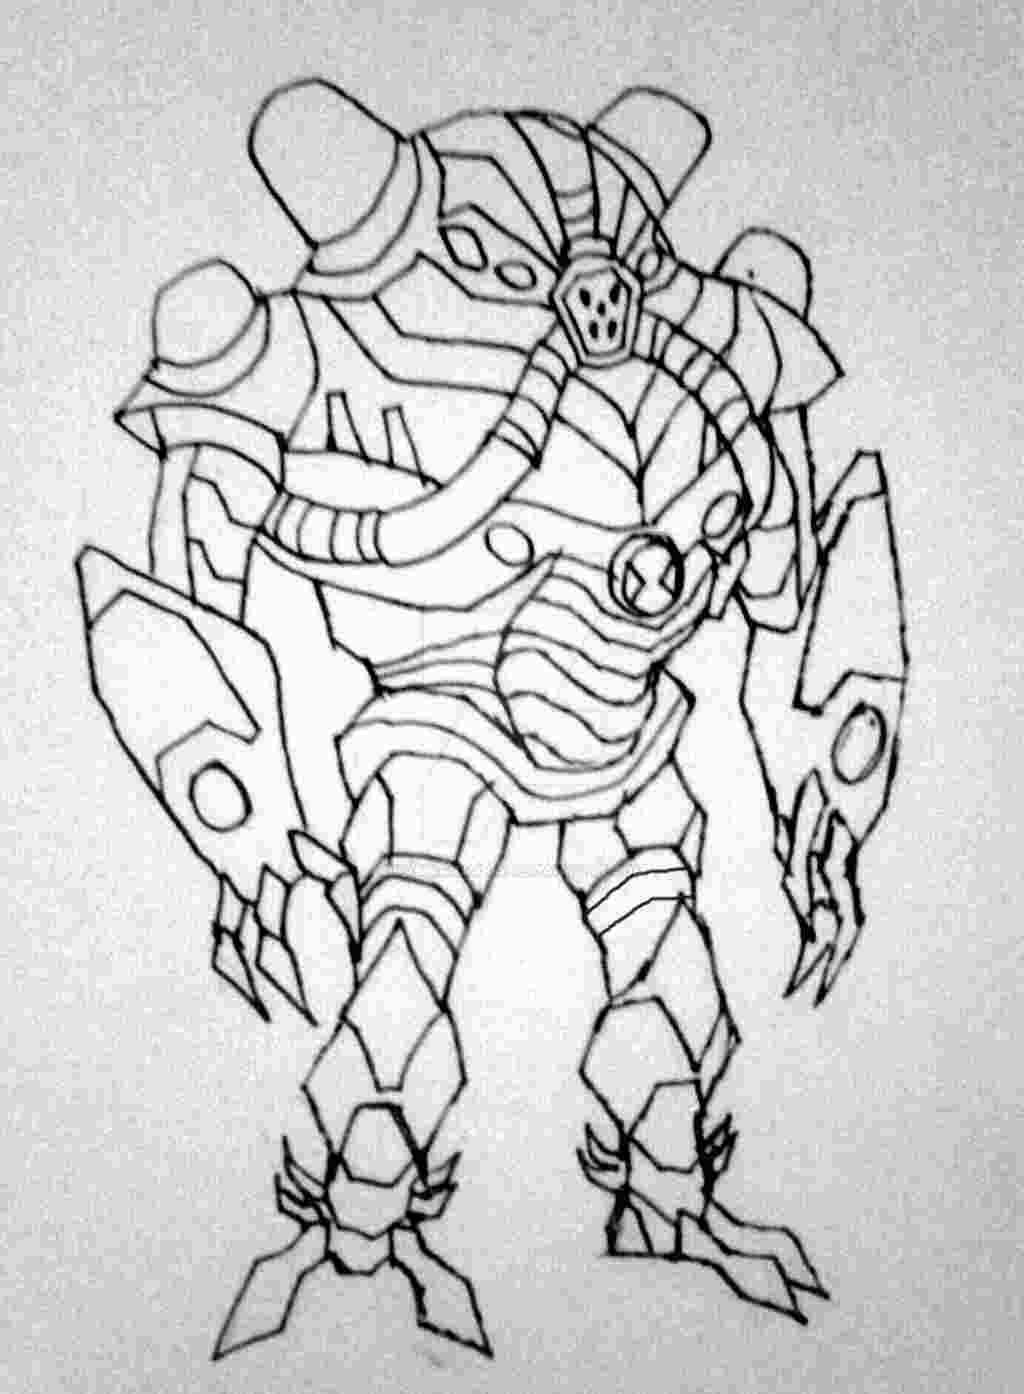 Ben 10 Overflow Coloring Ben 10 Coloring Pages Coloring Book Pages